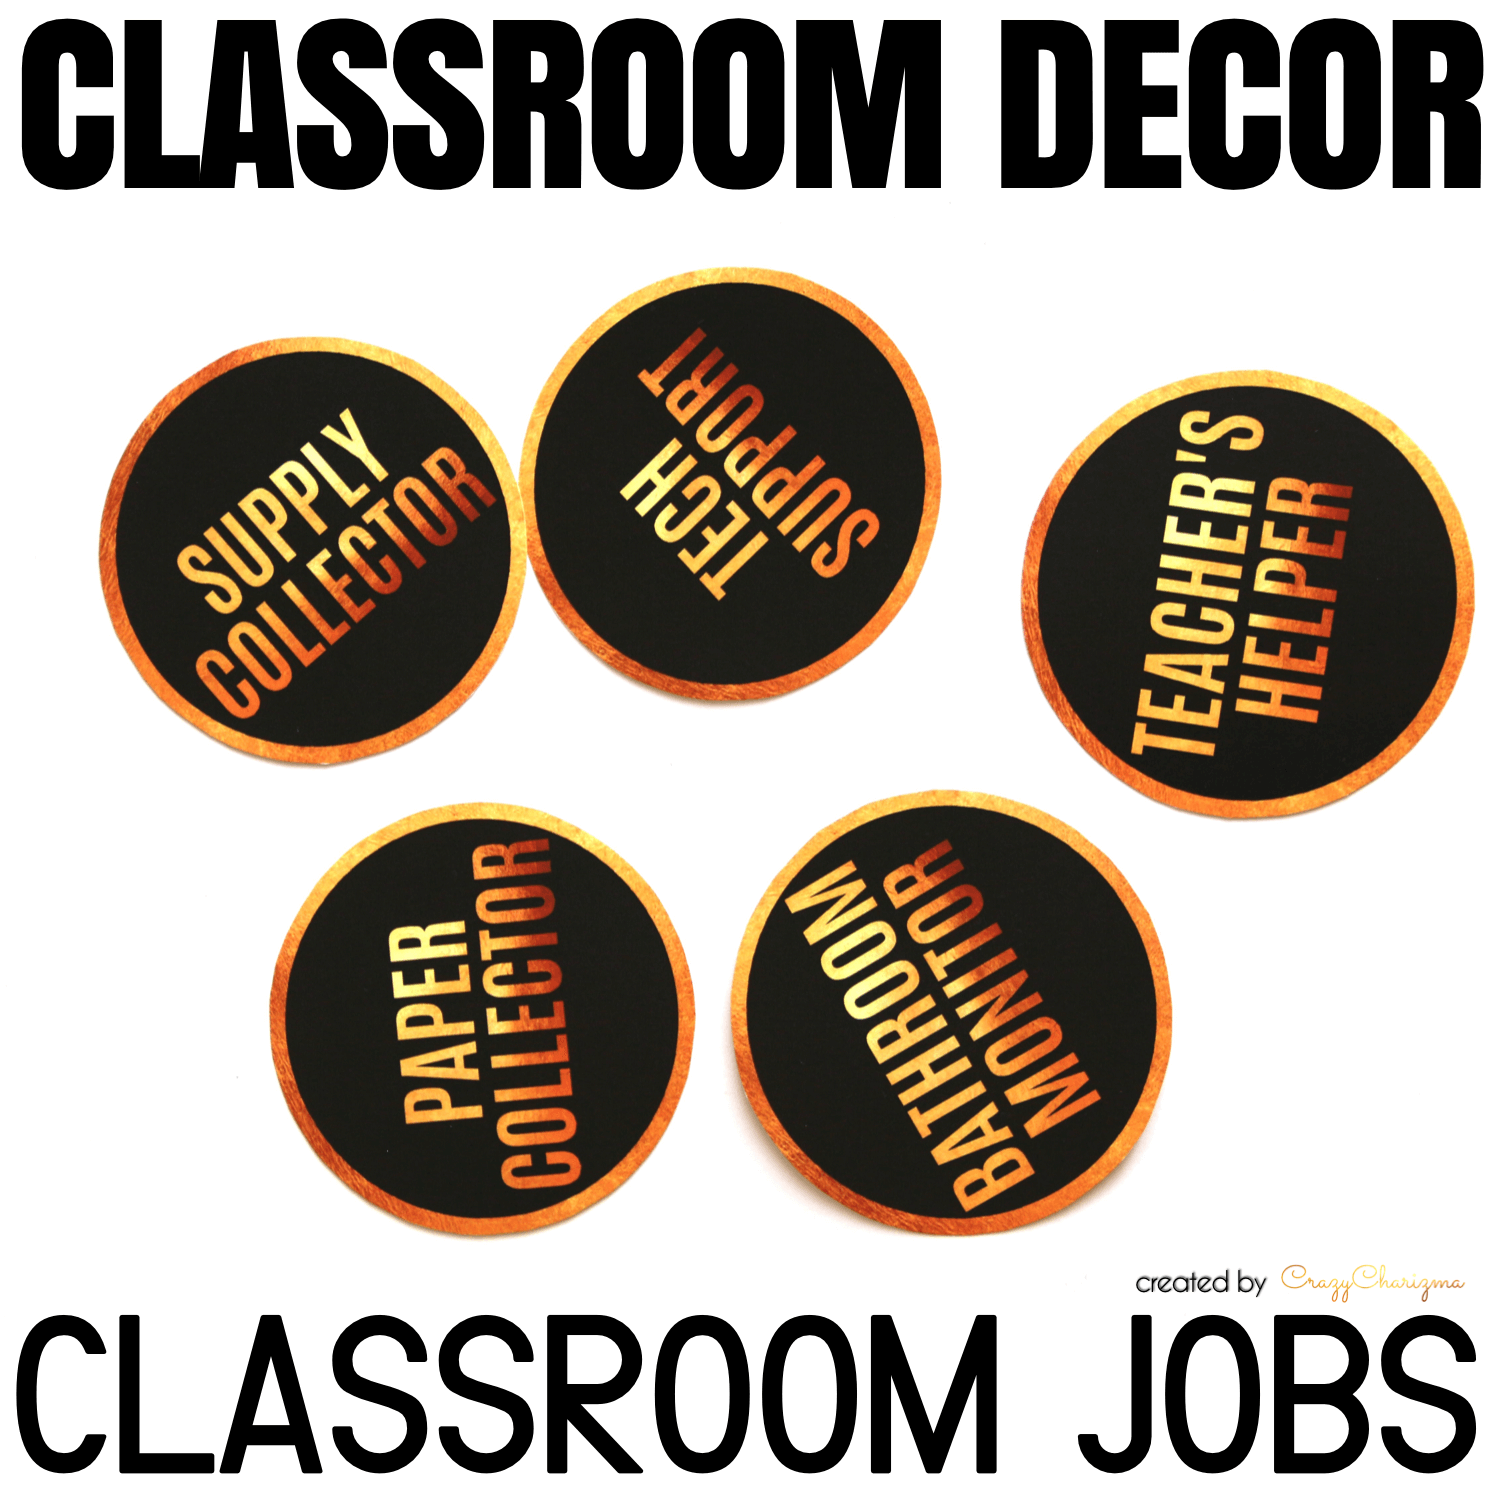 Decorate your classroom this year with this stylish BLACK and GOLD decor set. Find inside vibrant and bright Classroom Jobs cards.